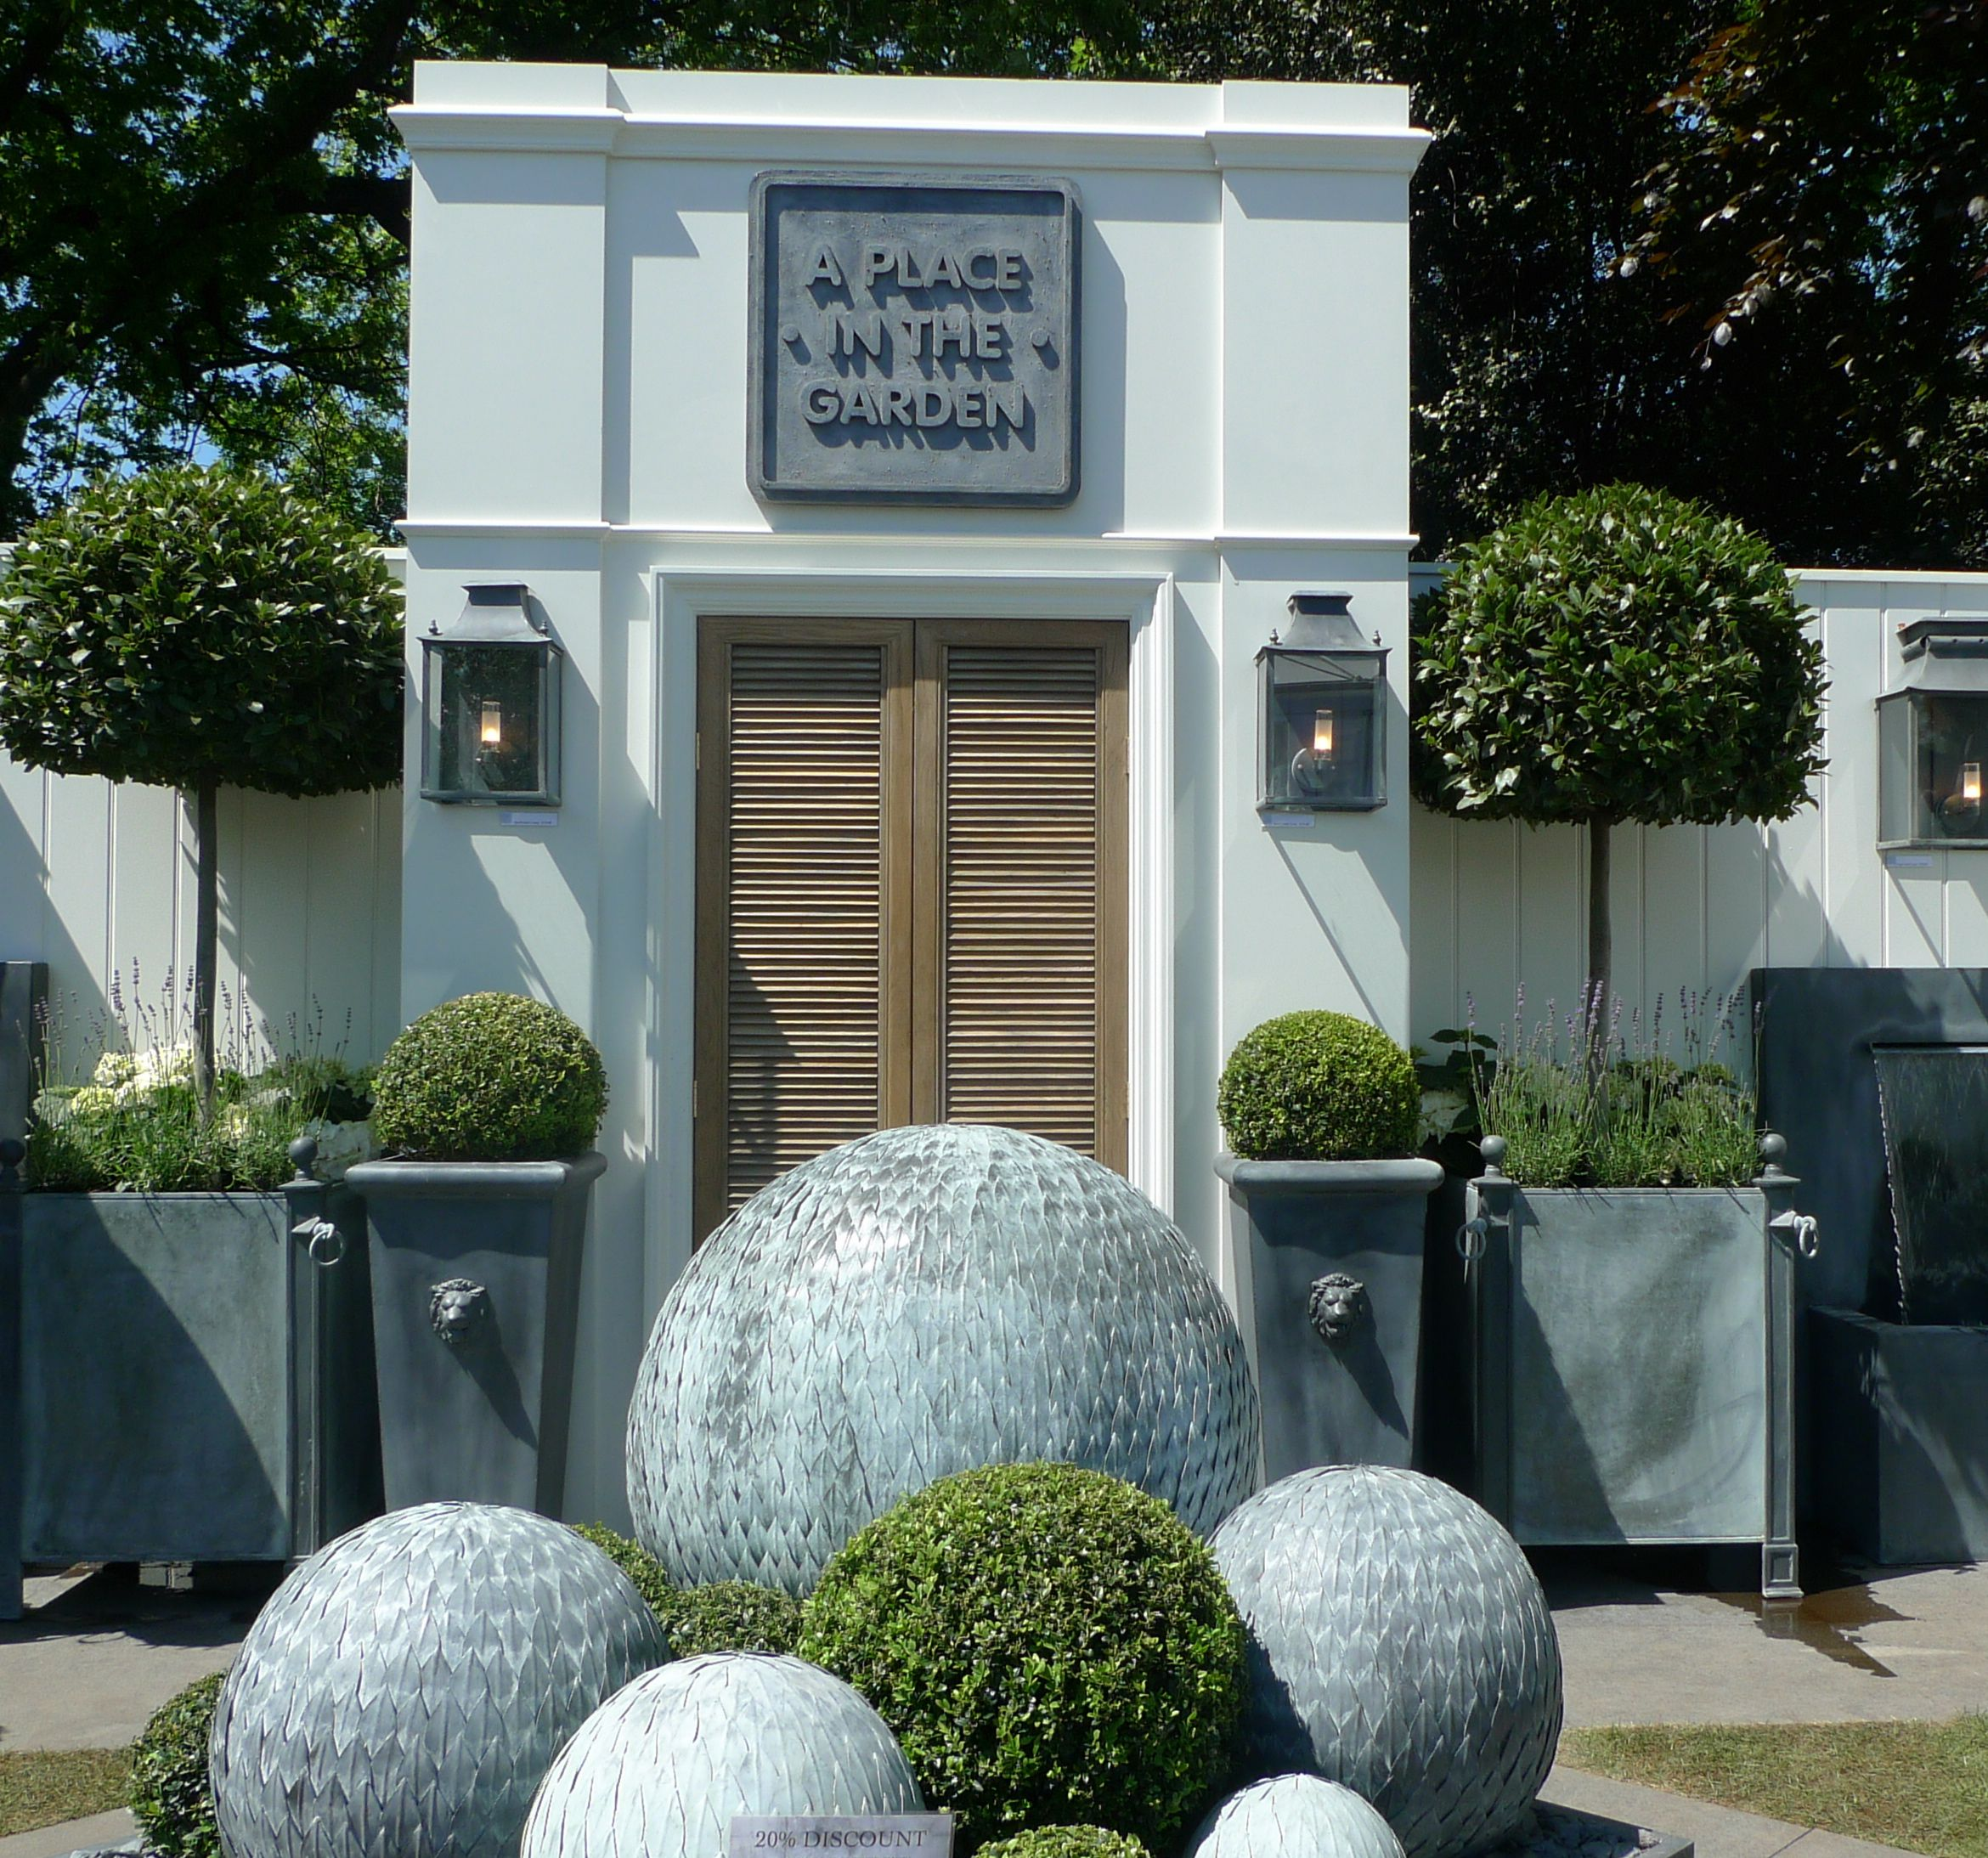 zinc planters from A Place in the Garden. Chelsea Flower